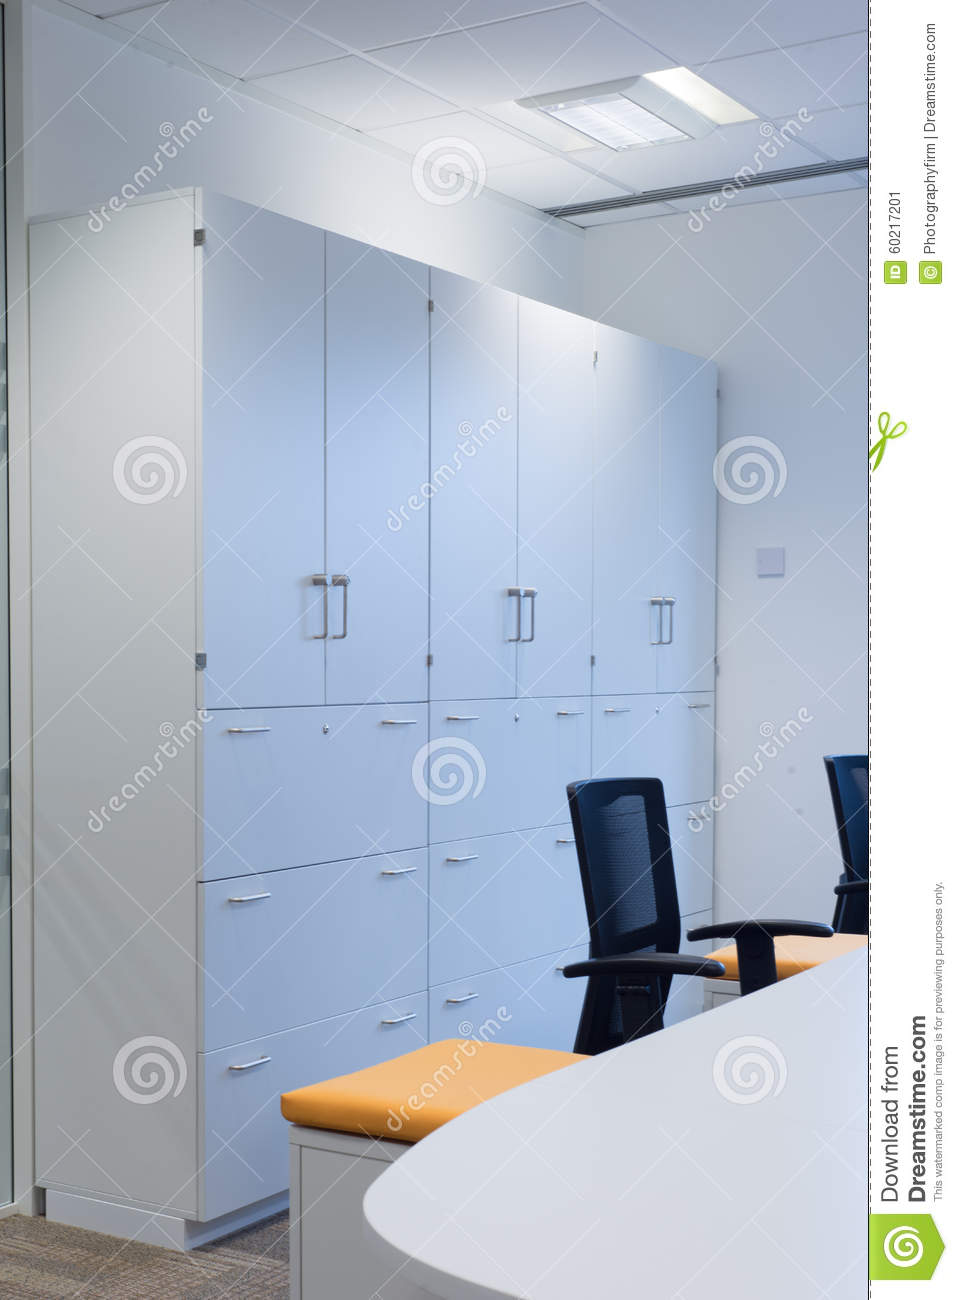 Office Storage Cabinets Stock Image Image Of Windows 60217201